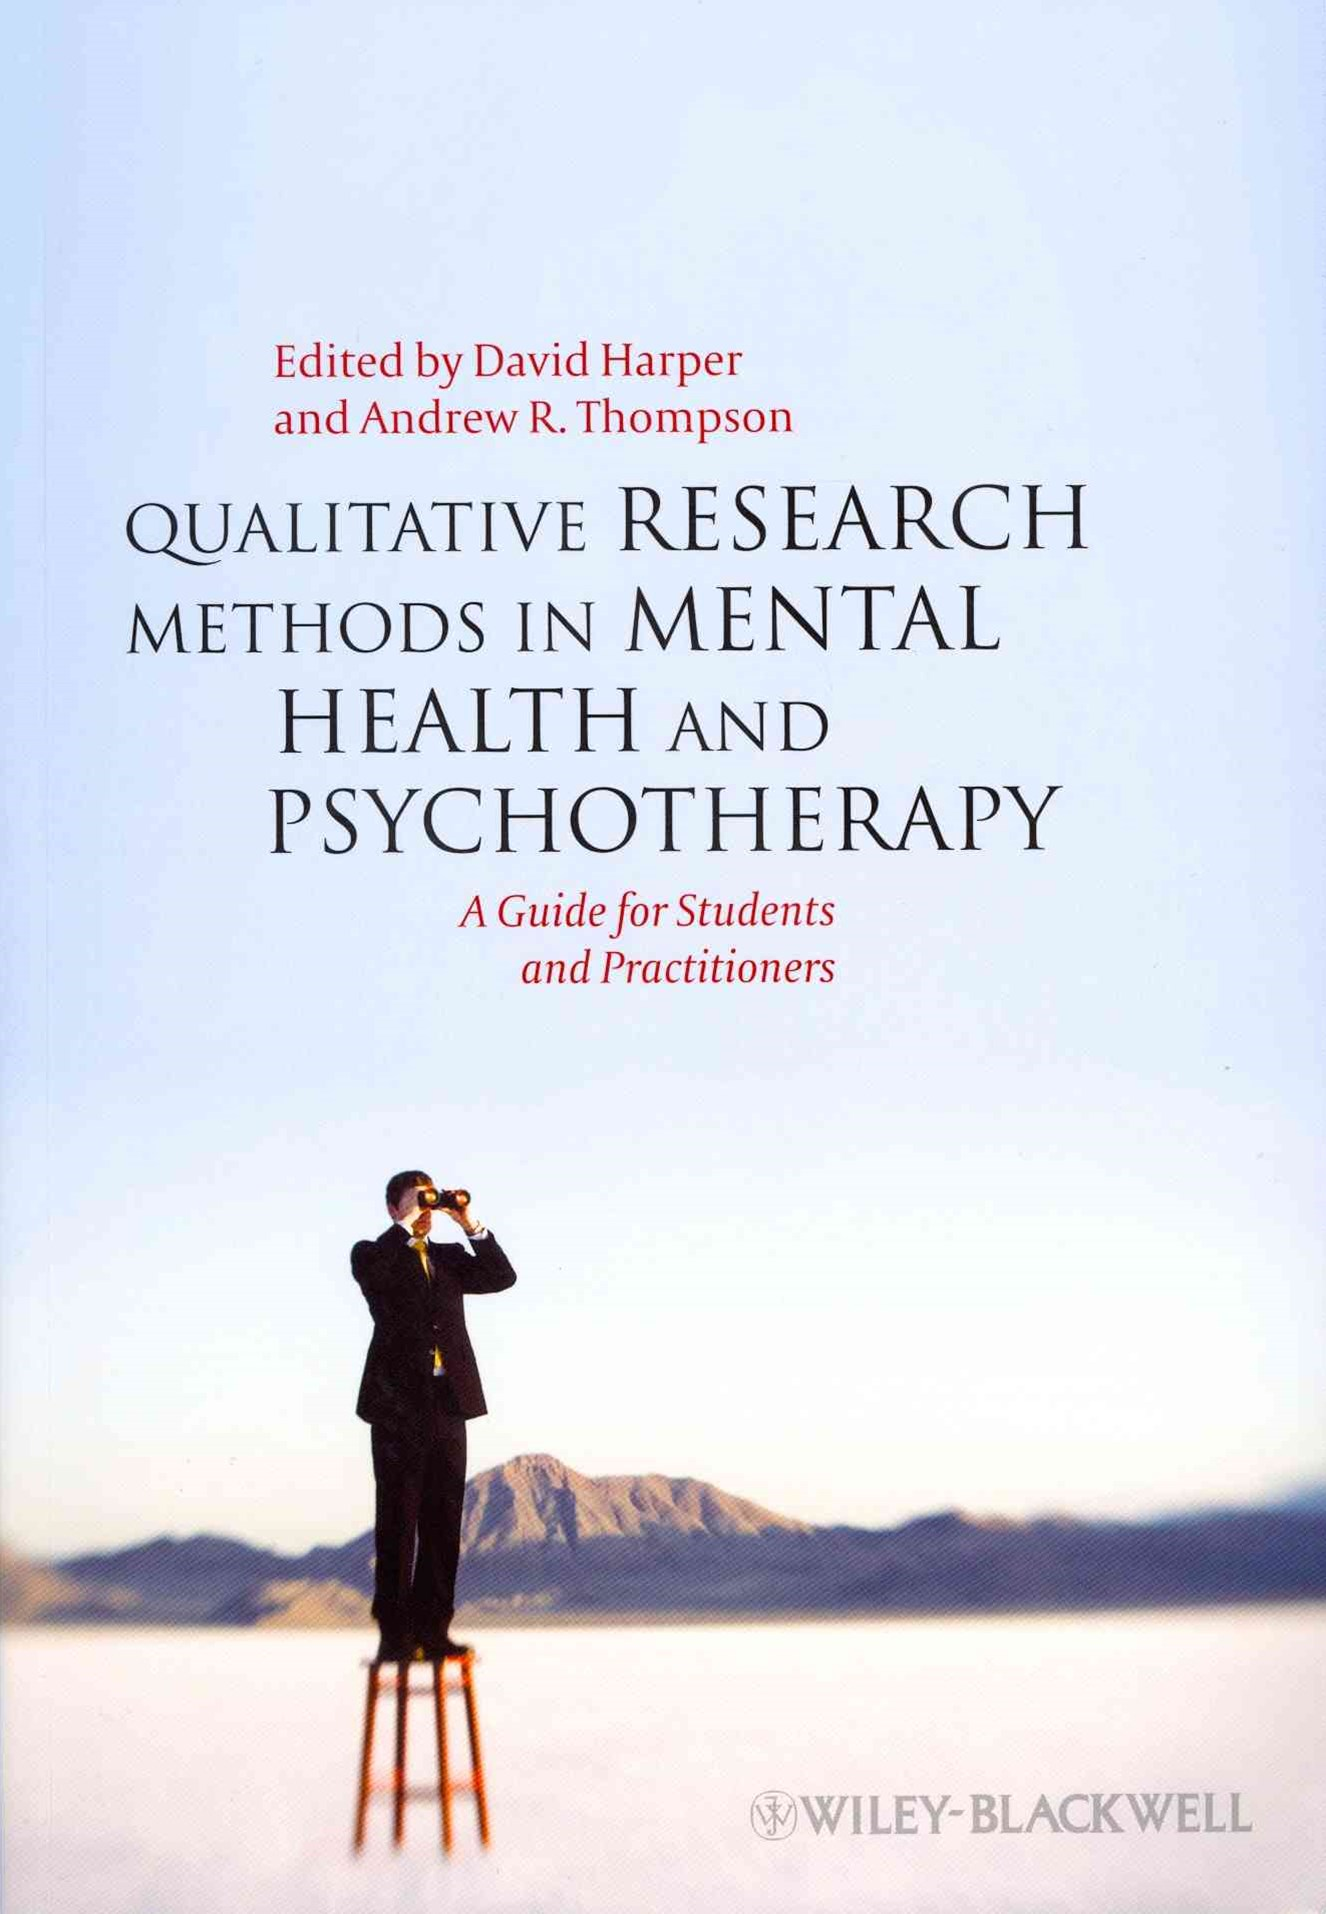 Qualitative Research Methods in Mental Health and Psychotherapy - a Guide for Students and